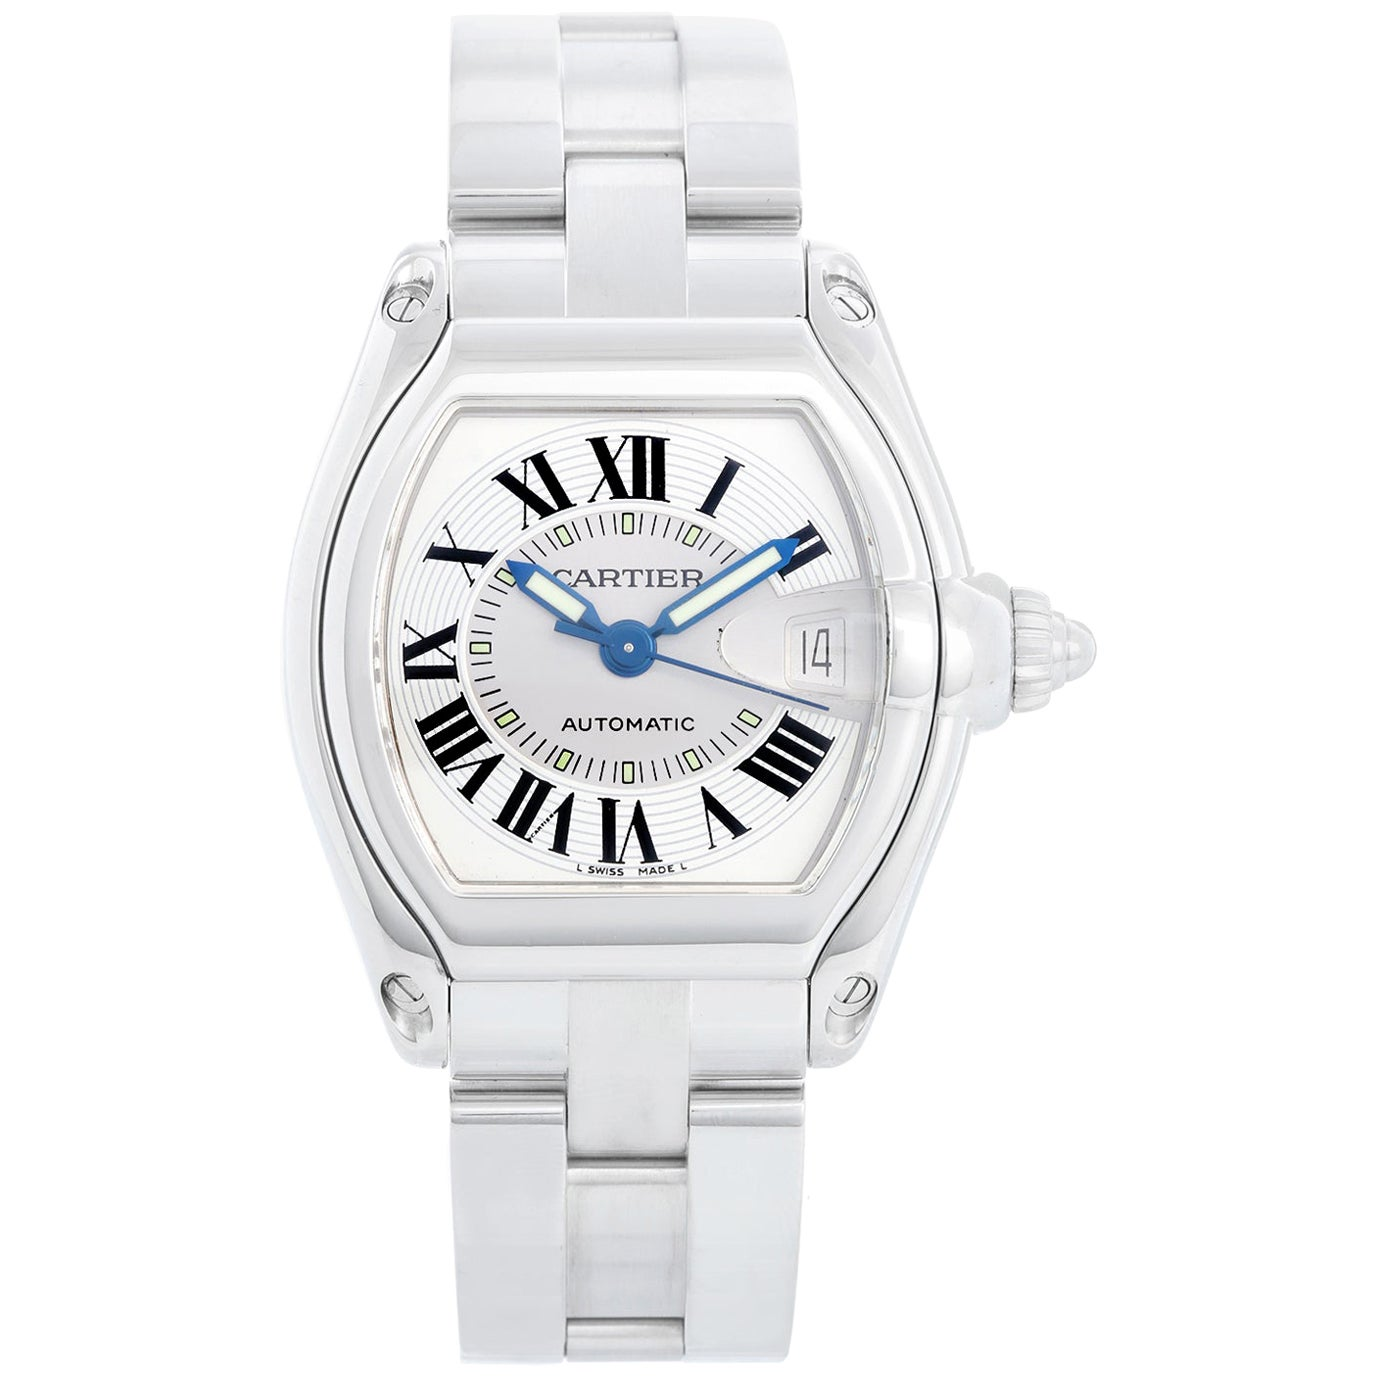 Cartier Automatic Stainless Steel Roadster Men's Watch W62025V3